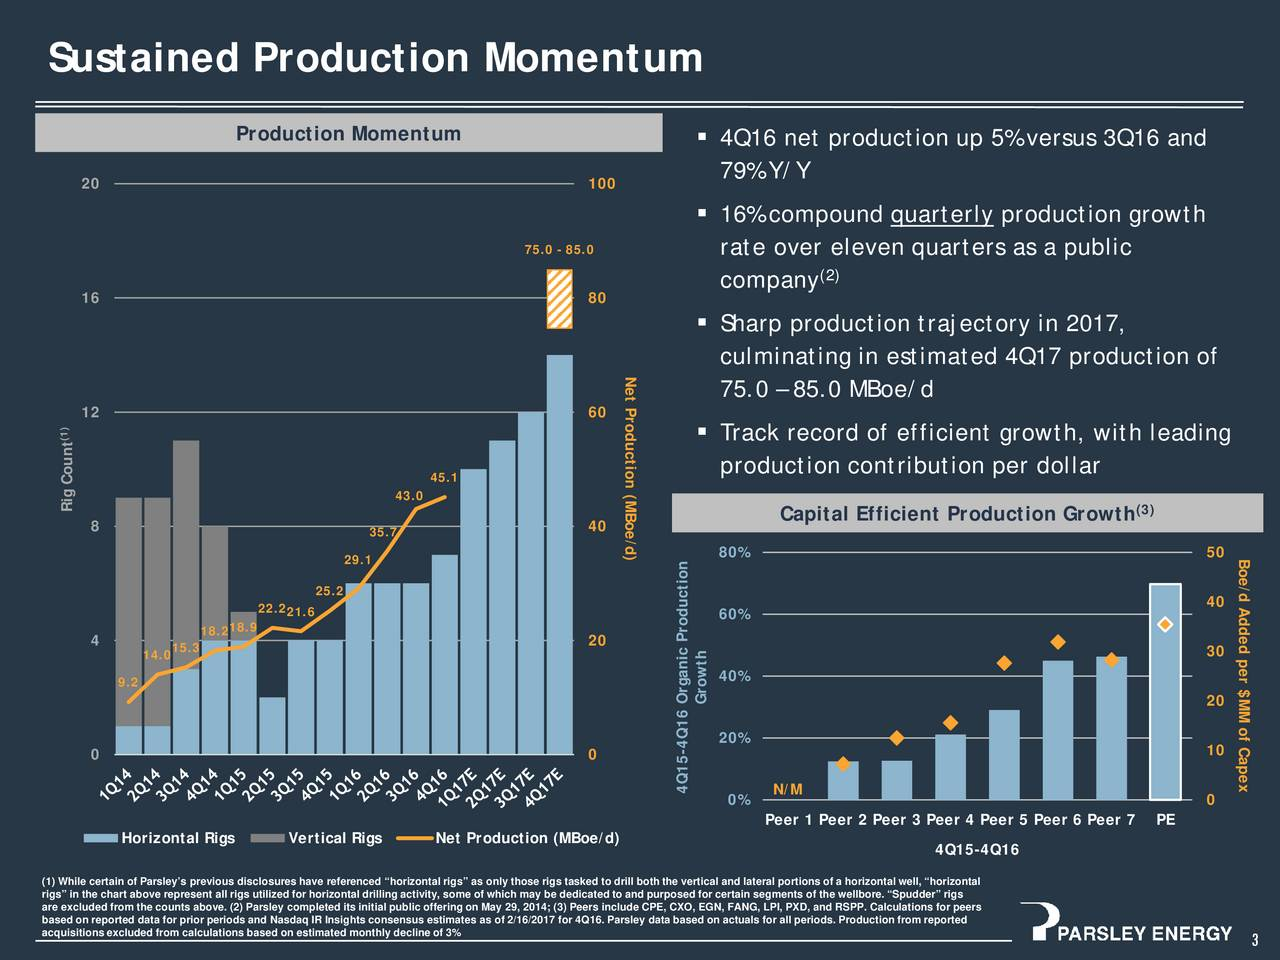 Production Momentum 4Q16 net production up 5% versus 3Q16 and 20 100 79% Y/Y 16% compound quarterly production growth 75.0 - 85.0 rate over eleven quarters as a public company (2) 16 80 Sharp production trajectory in 2017, Net Production (MBoe/d) in estimated 4Q17 production of 75.0  85.0 MBoe/d 12 60 (1)  Track record of efficient growth, with leading production contribution per dollar Count 45.1 Rig 43.0 Capital Efficient Production Growth (3) 8 35.7 40 29.1 80% 50 Boe 25.2 /d Added per $MM of Capex 22.2 40 18.9 21.6 60% 4 18.2 20 14.05.3 30 40% 9.2 Growth 20 4Q16 Organic Production 0 0 10 4Q15- N/M 0% 0 Peer 1 Peer 2 Peer 3 Peer 4 Peer 5 Peer 6 PeerPE Horizontal Rigs Vertical Rigs Net Production (MBoe/d) 4Q15-4Q16 rigs in the chart above represent all rigs utilized for horizontal drilling activity, some of which may be dedicated to and purposed for certain segments of the wellbore. Spudder rigsizontal are excluded from the counts above. (2) Parsley completed its initial public offering on May 29,2014; (3) Peers include CPE, CXO, EGN, FANG, LPI, PXD, and RSPP. Calculations for peers based on reported data for prior periods and Nasdaq IR Insights consensus estimates as of 2/16/2017 for 4Q16. Parsley data based on actuals for all periods. Production from reported acquisitions excluded from calculations based on estimated monthly decline of 3% 3